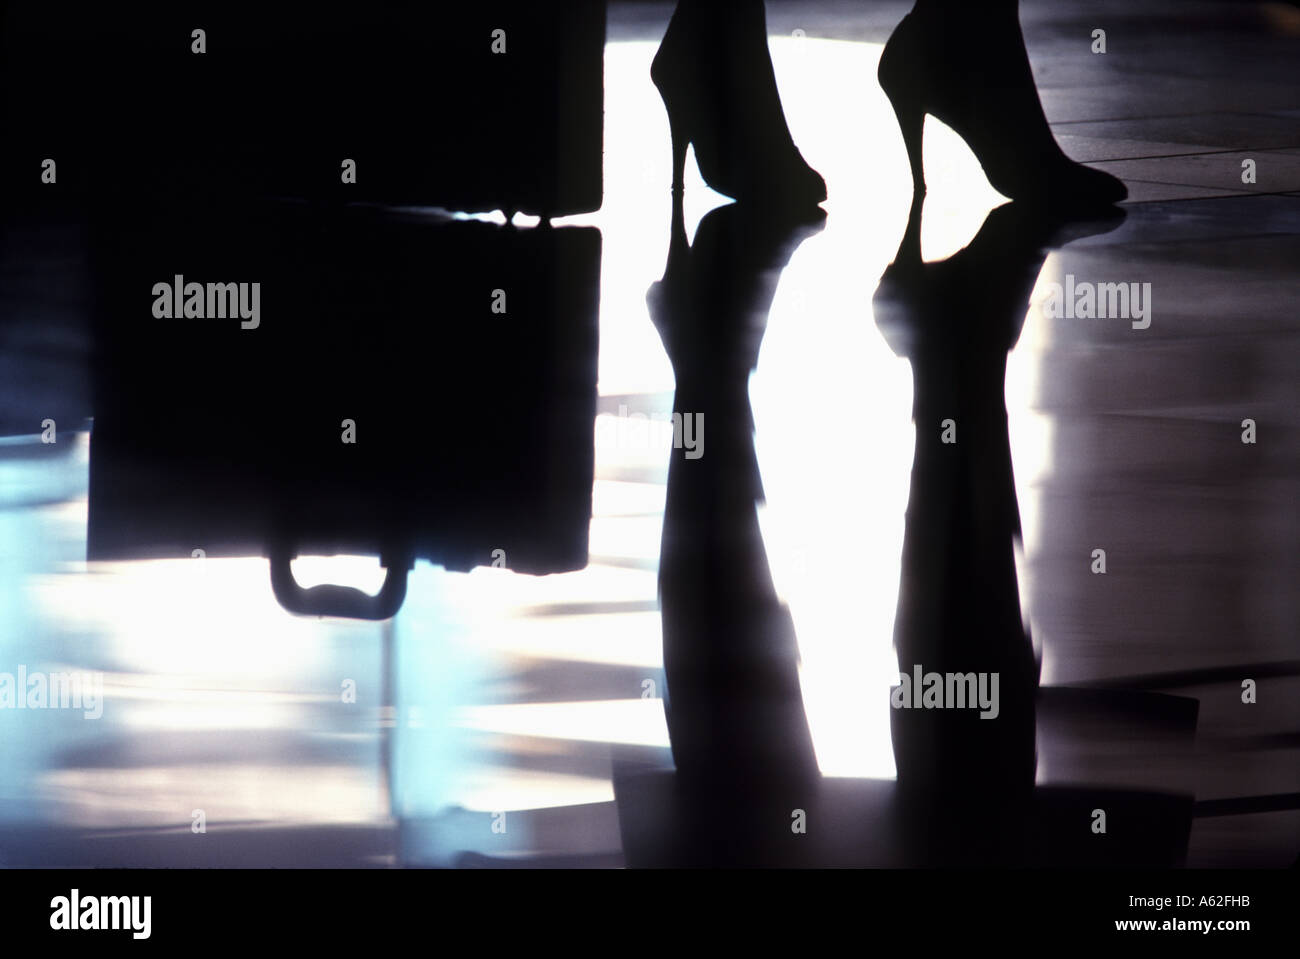 A graphic abstract of a woman's pair of high heels reflecting on a hotel lobby floor - Stock Image